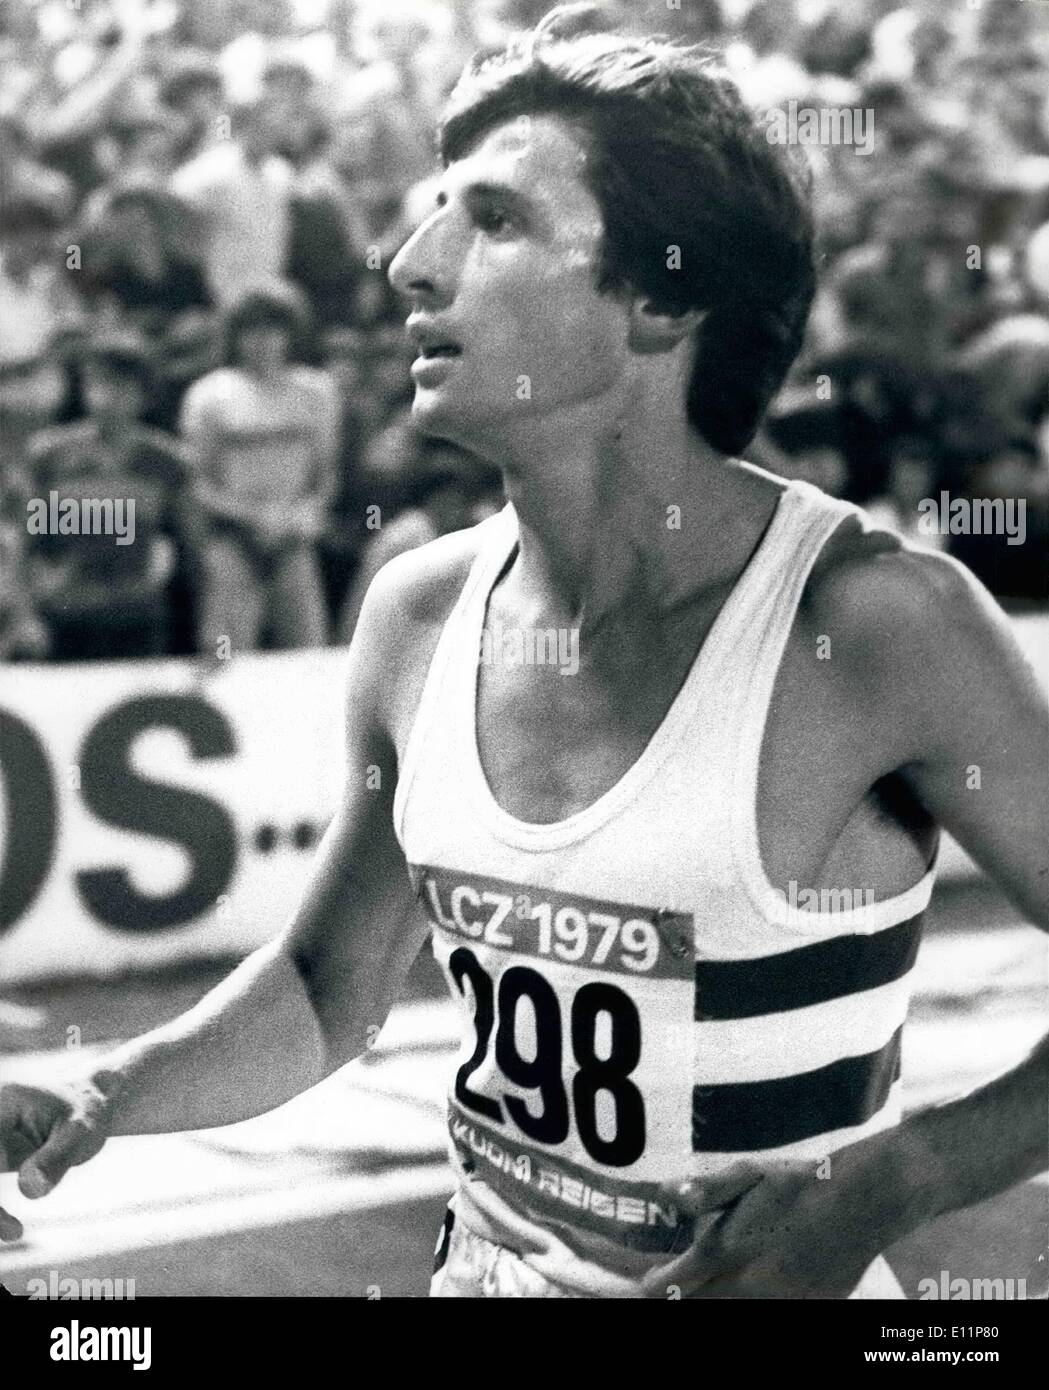 Aug. 08, 1979 - SEBASTIAN COE SMASHES THE WORLD 1500 METRES RECORD IN ZURICH For the third time in 41 days 22-year-old Sebastien Coe broke a world record, in Zurick last night be beat an International field by 70 yards for a time of 3mins 32.03 secs to clip almost a fifth of a second off the old record set by Tanzania's Filbert Bayi five years ago. He already holds the world records for the 800 metres. and the one mile. No man in history has ever hold all three records simulrencously until now. Photo Shows: SEBASTIAN COE after his great win in Zurich last night. - Stock Image